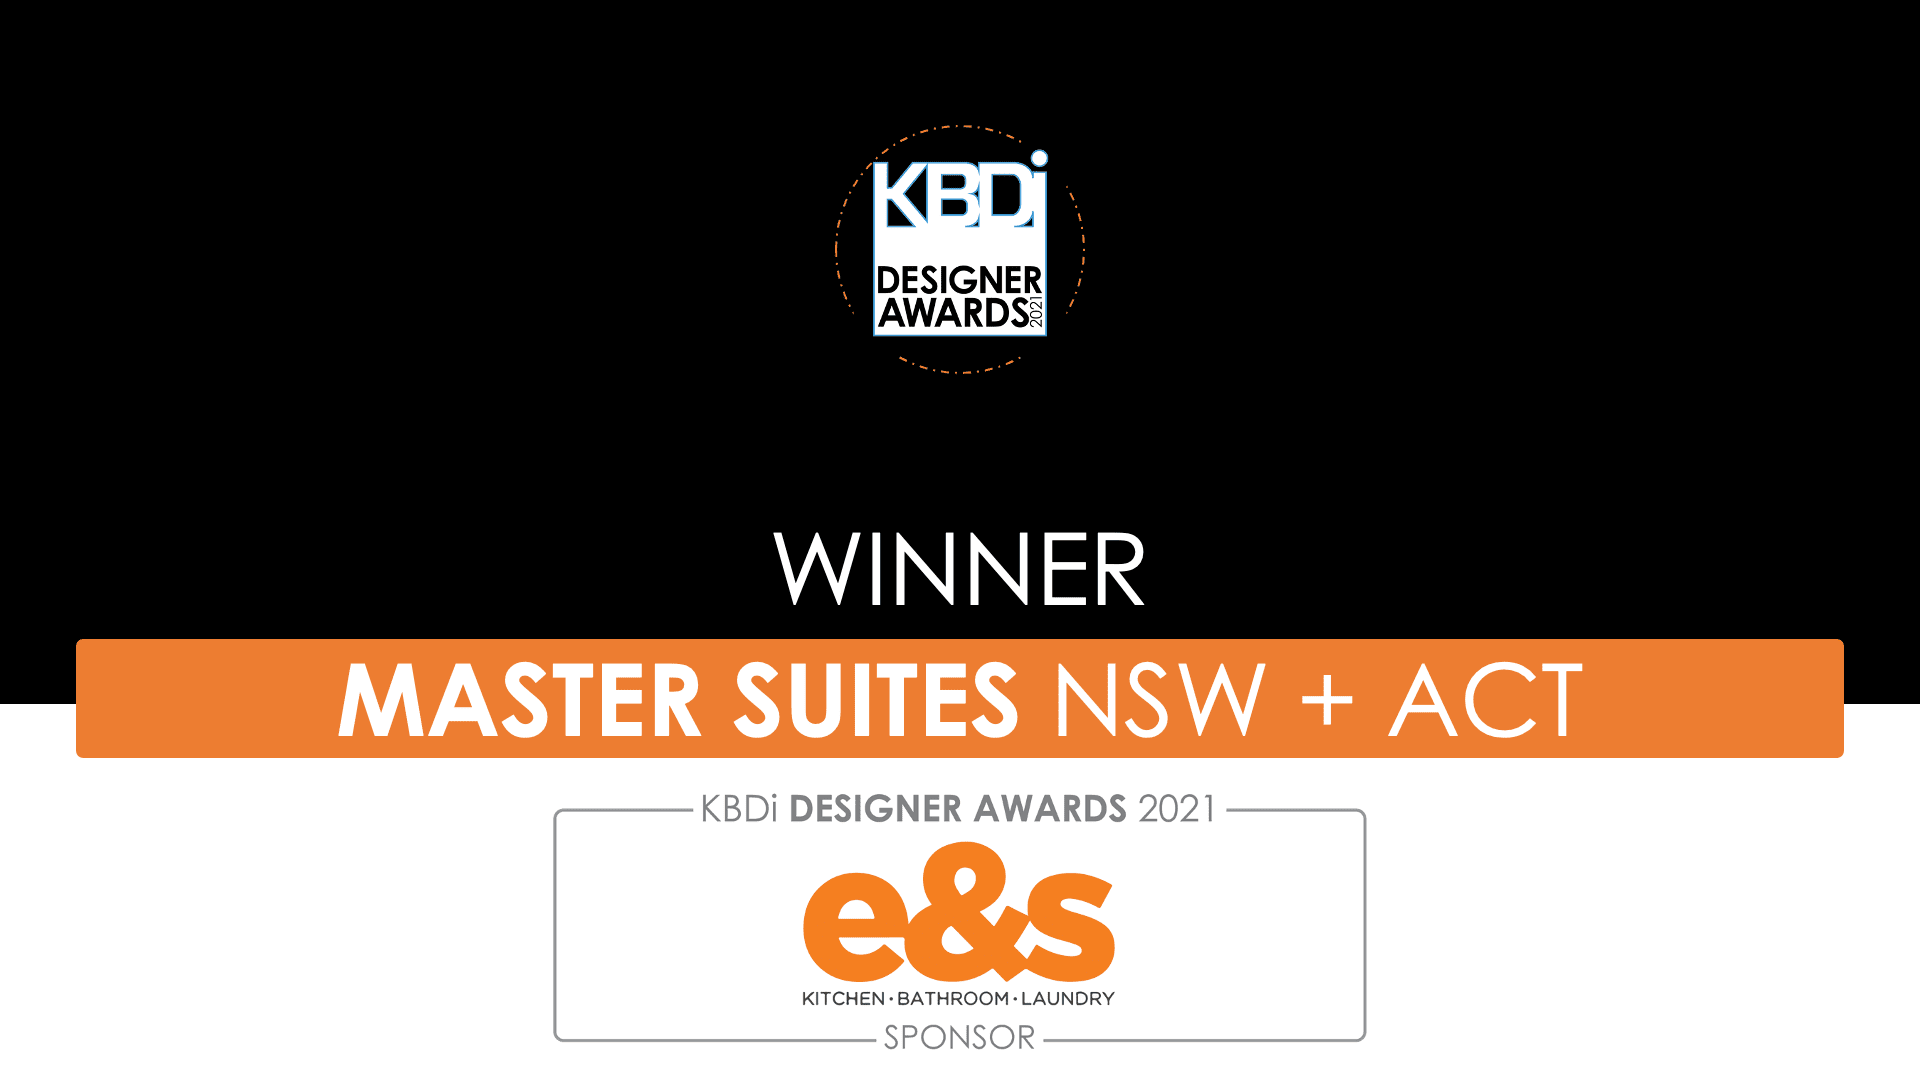 26_W_Master Suites_NSW+ACT